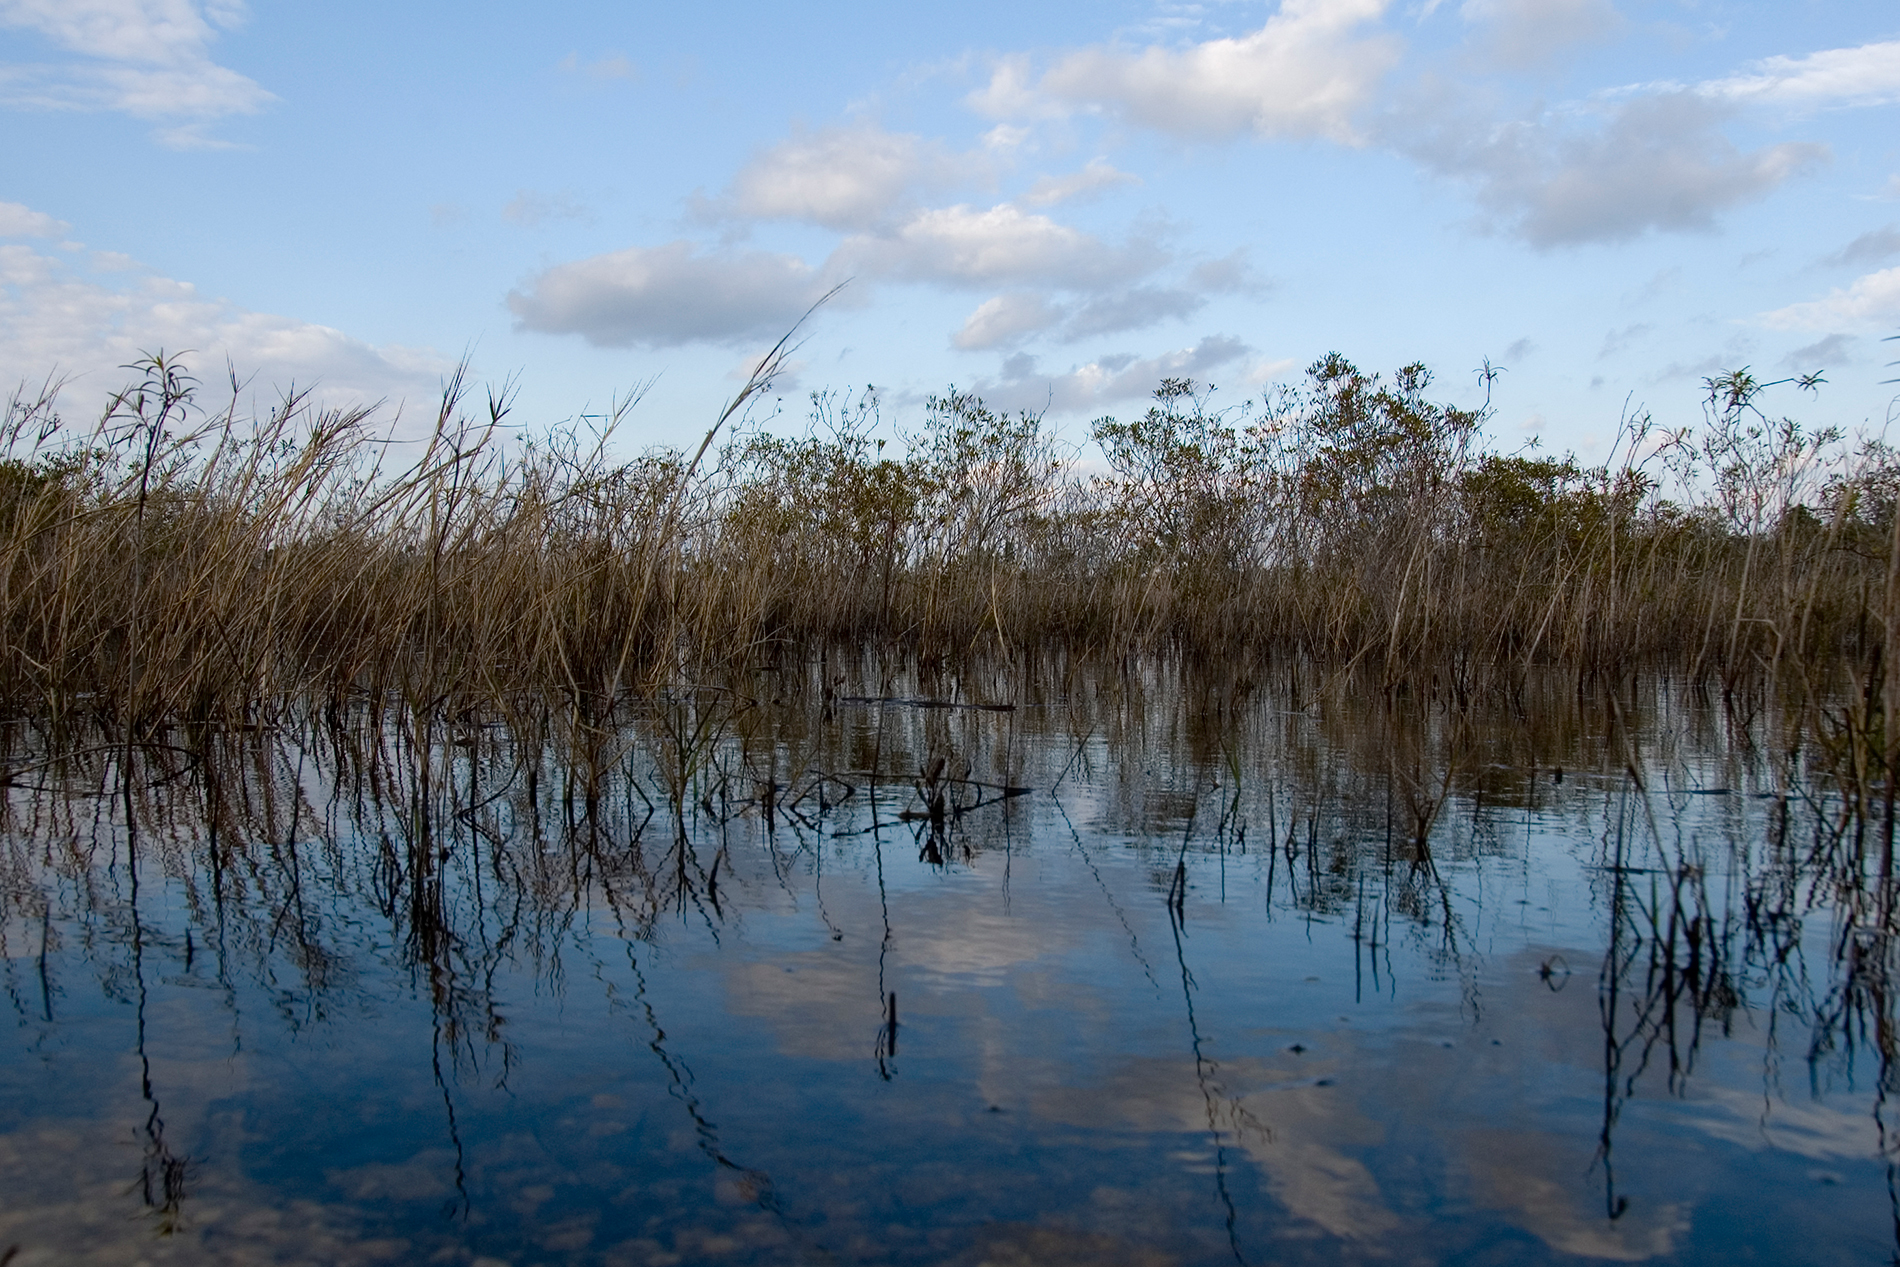 Tears for the Magnificent and Shrinking Everglades